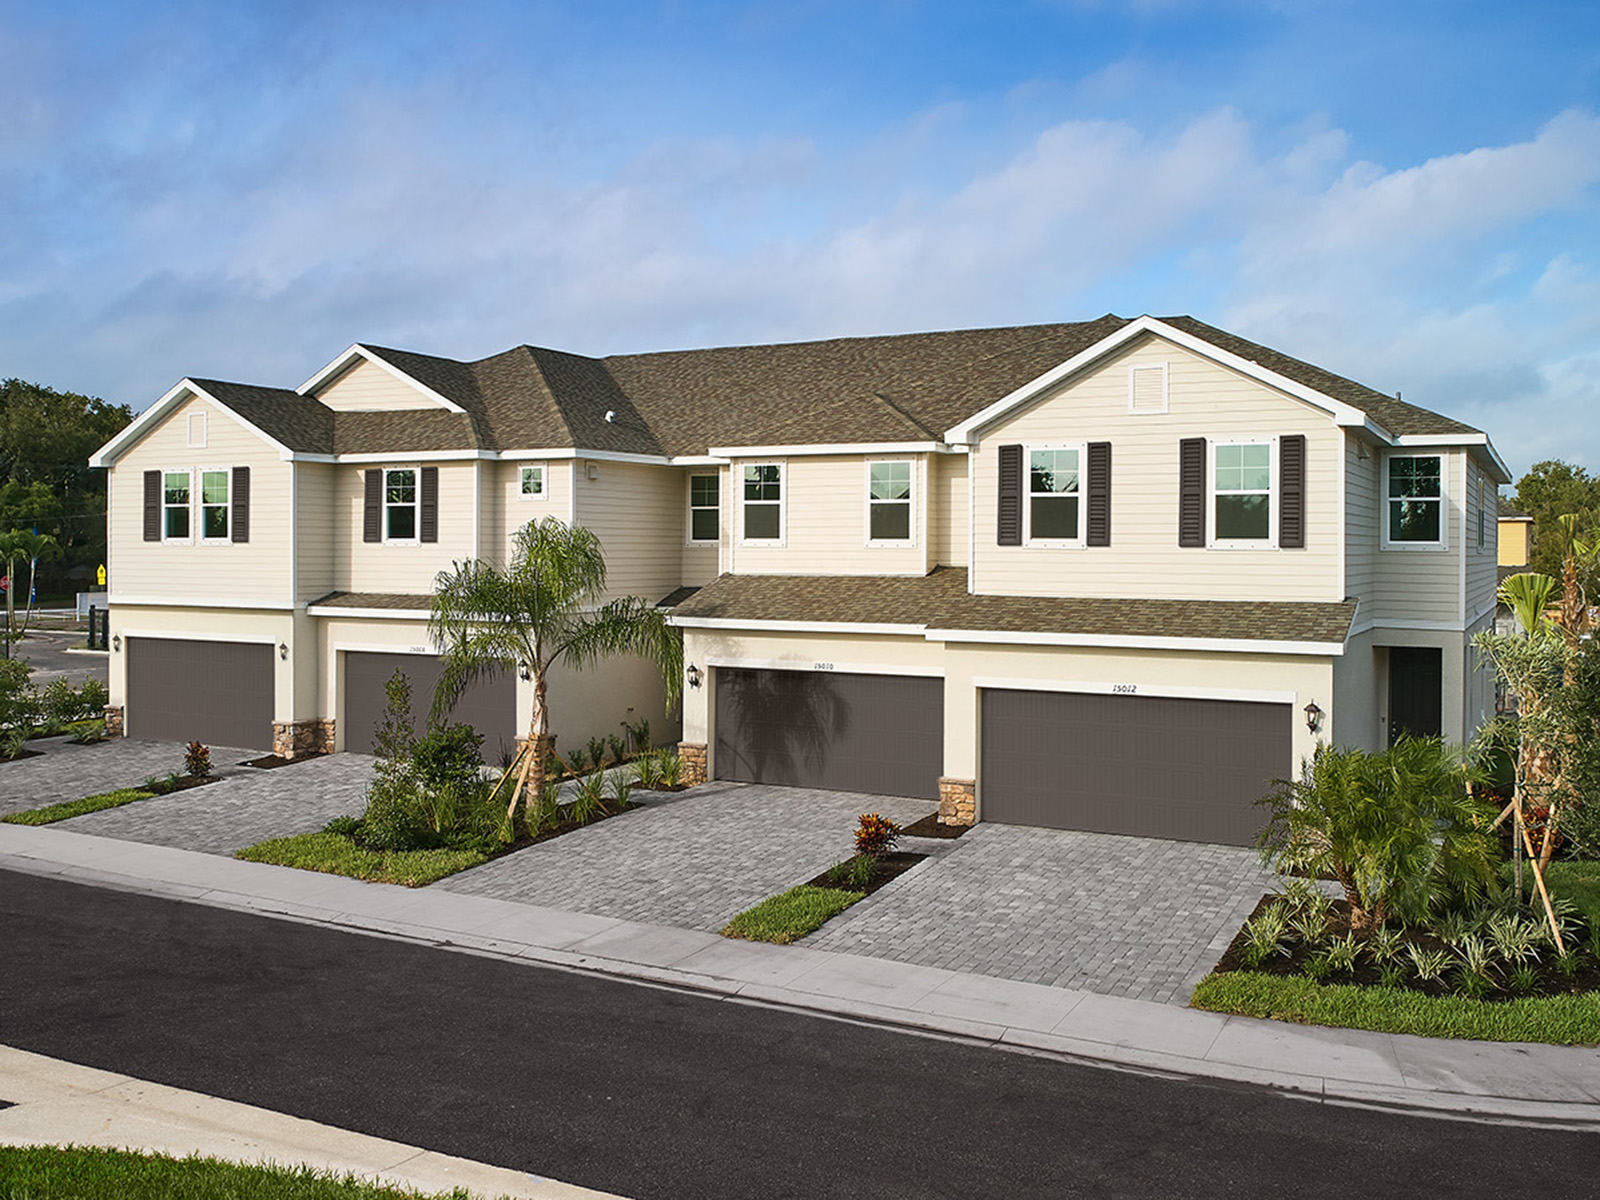 New Homes for Sale in Florida | Meritage Homes